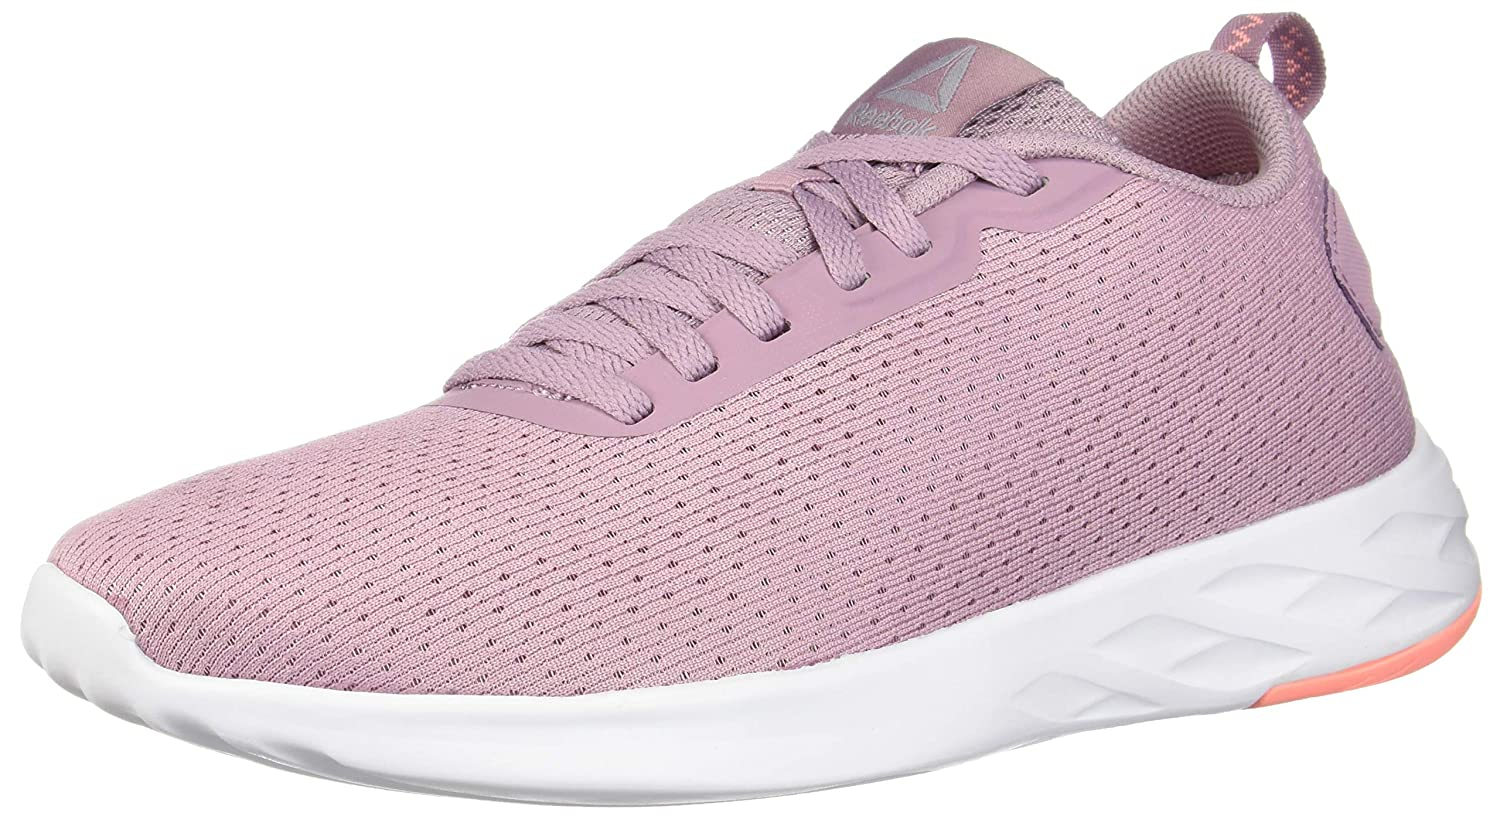 Infused purplec Digital Pink White Reebok Women's Astroride Soul Walking shoes